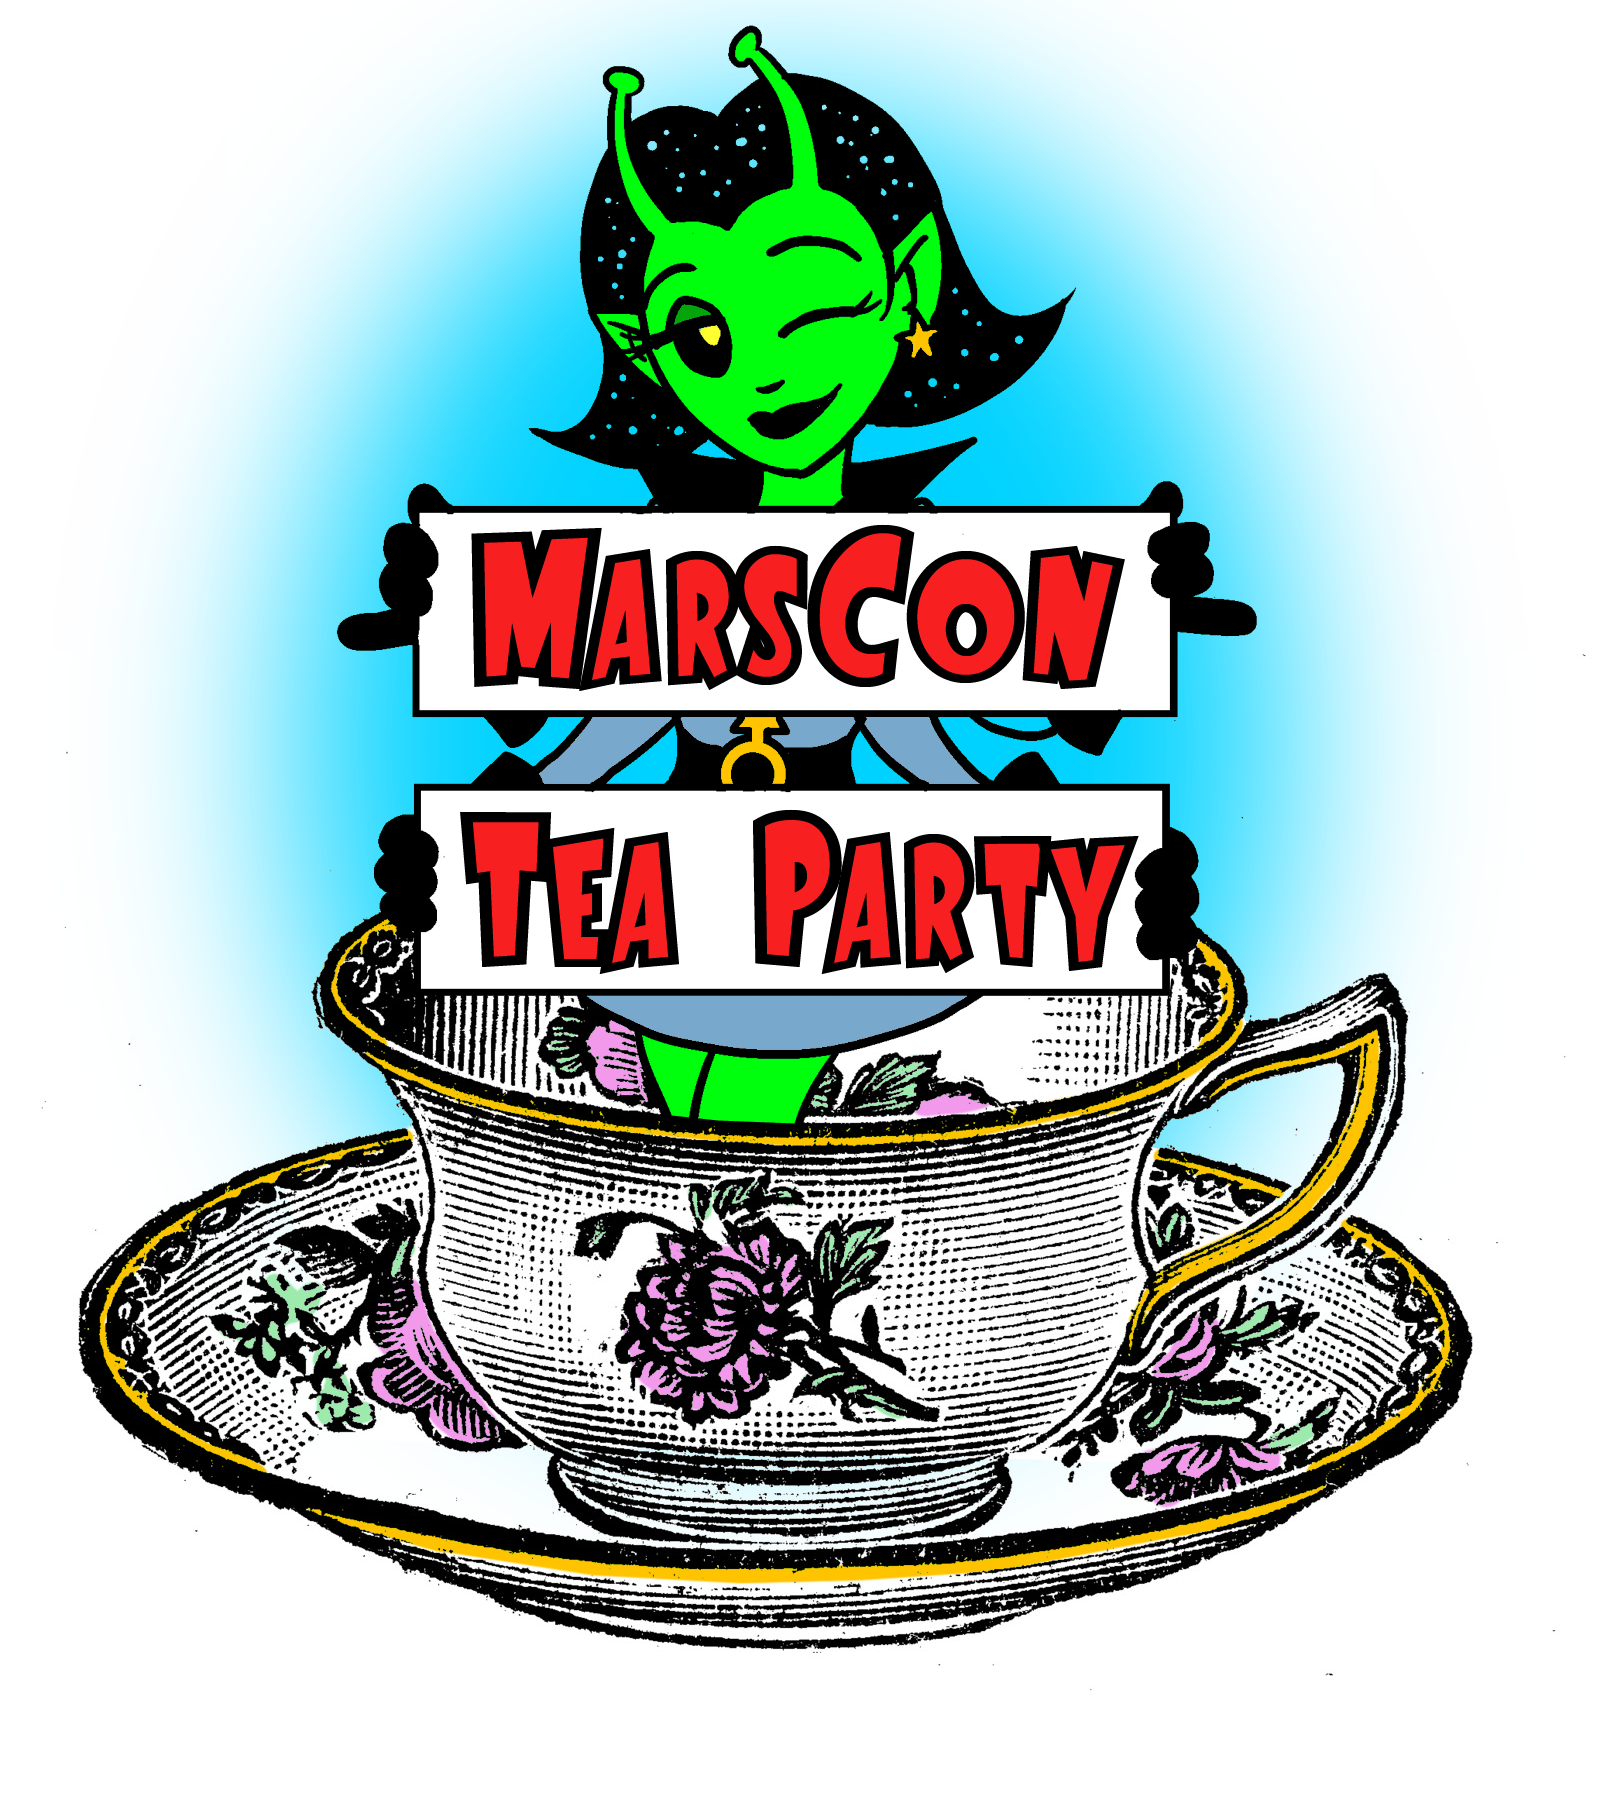 Tea-party-sign